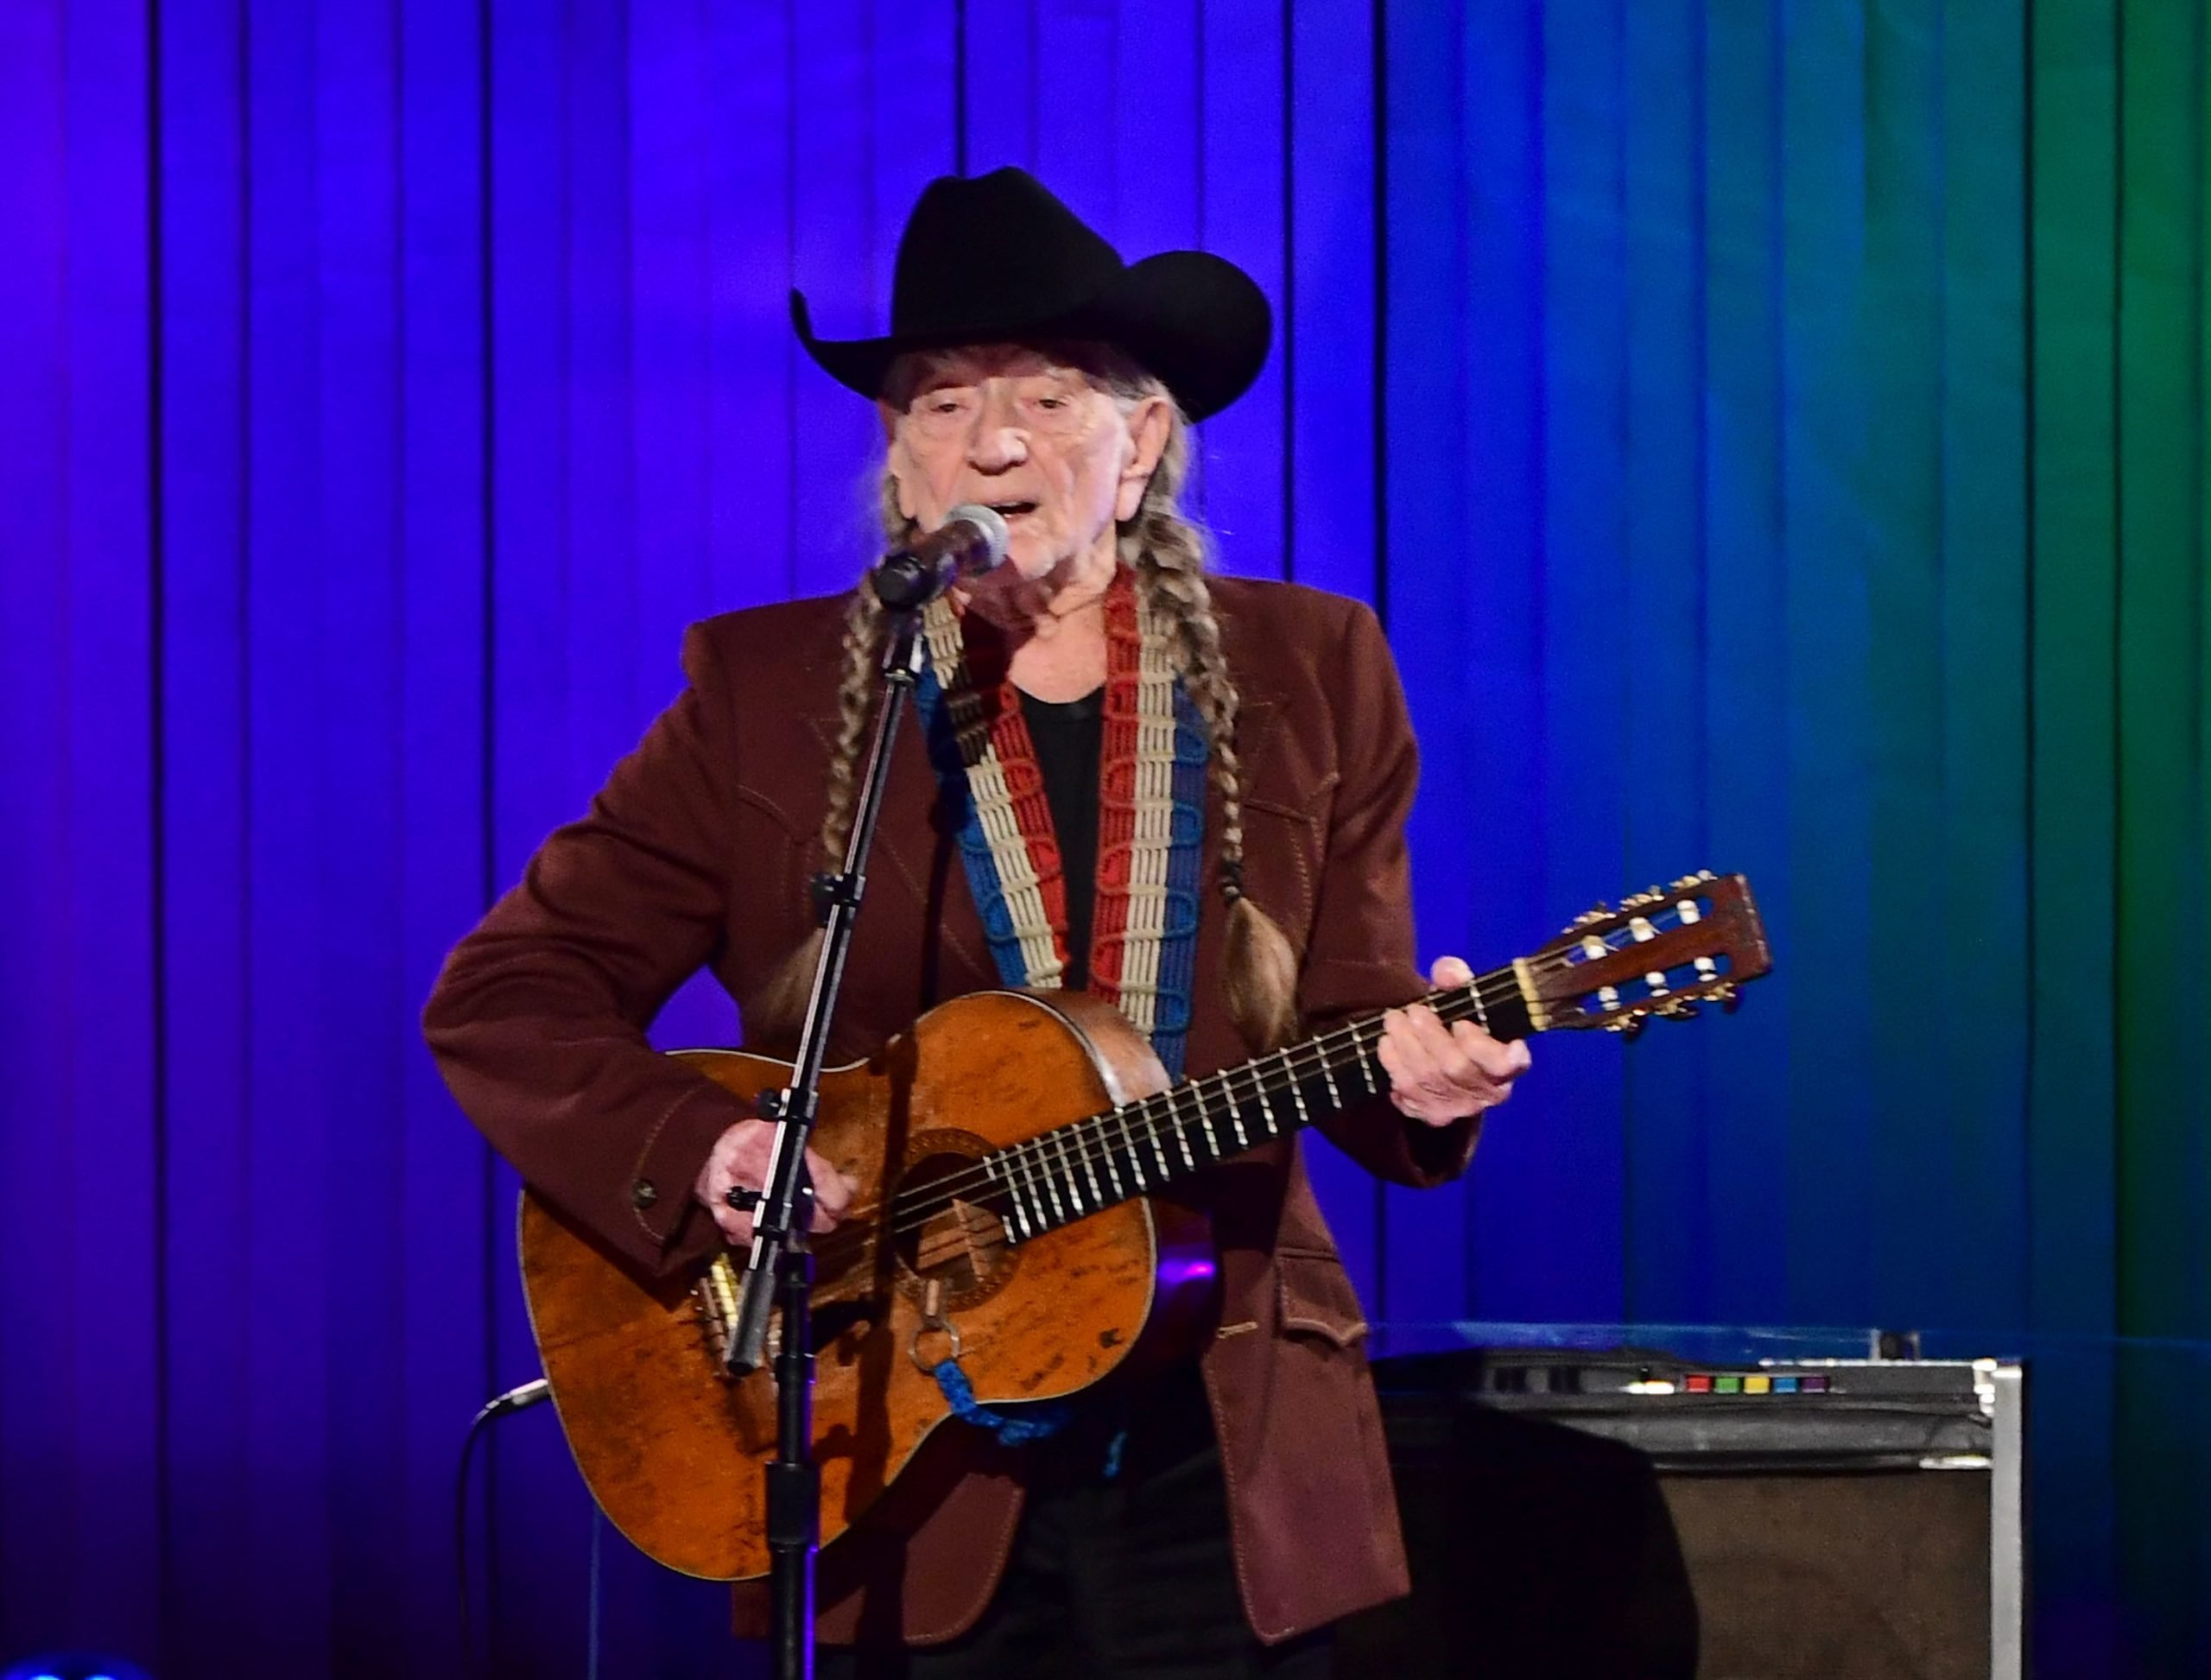 willie nelson performing